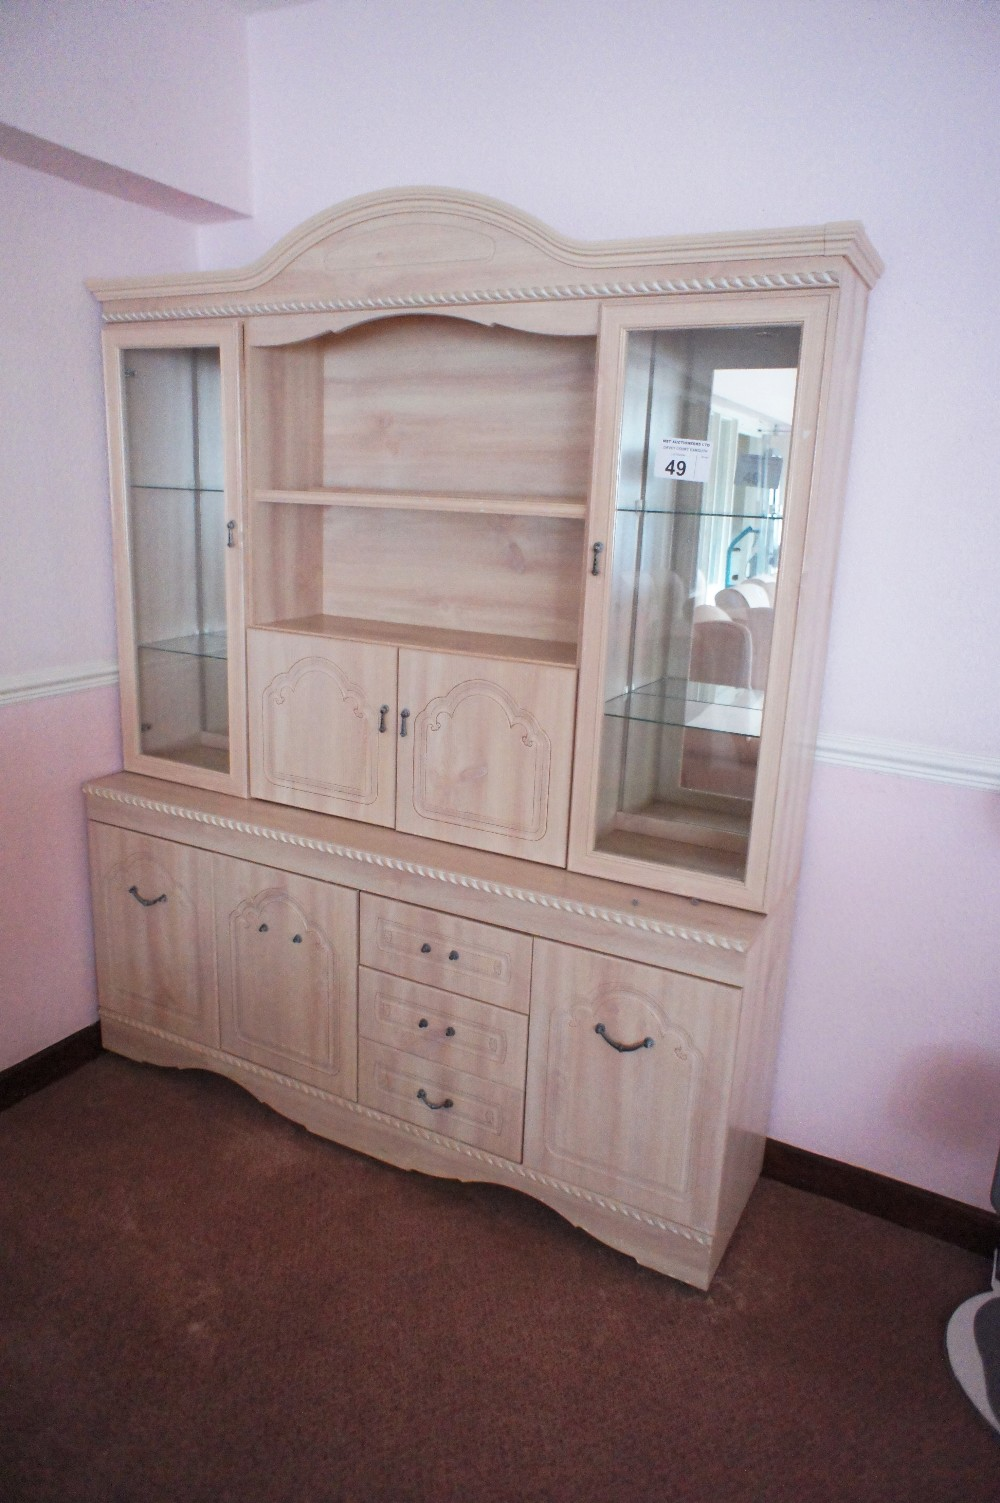 Lot 49 - 1 light colored woodgrained finished dresser with open shelves and cupboards (located in room 18,